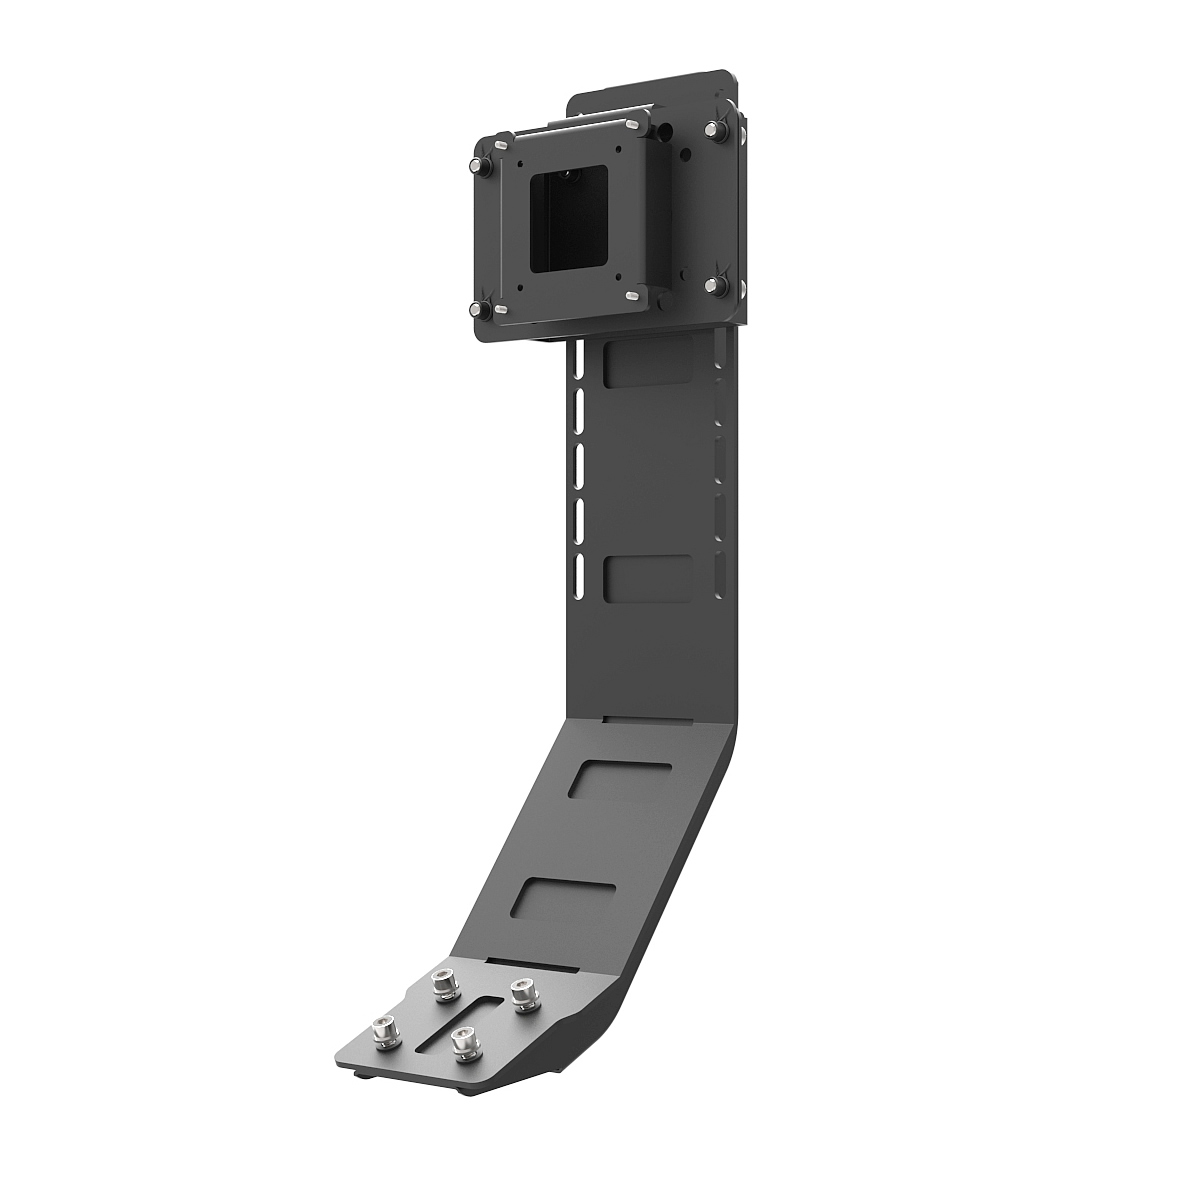 B1 / P1 / C1 Chassis Monitor Stand Black